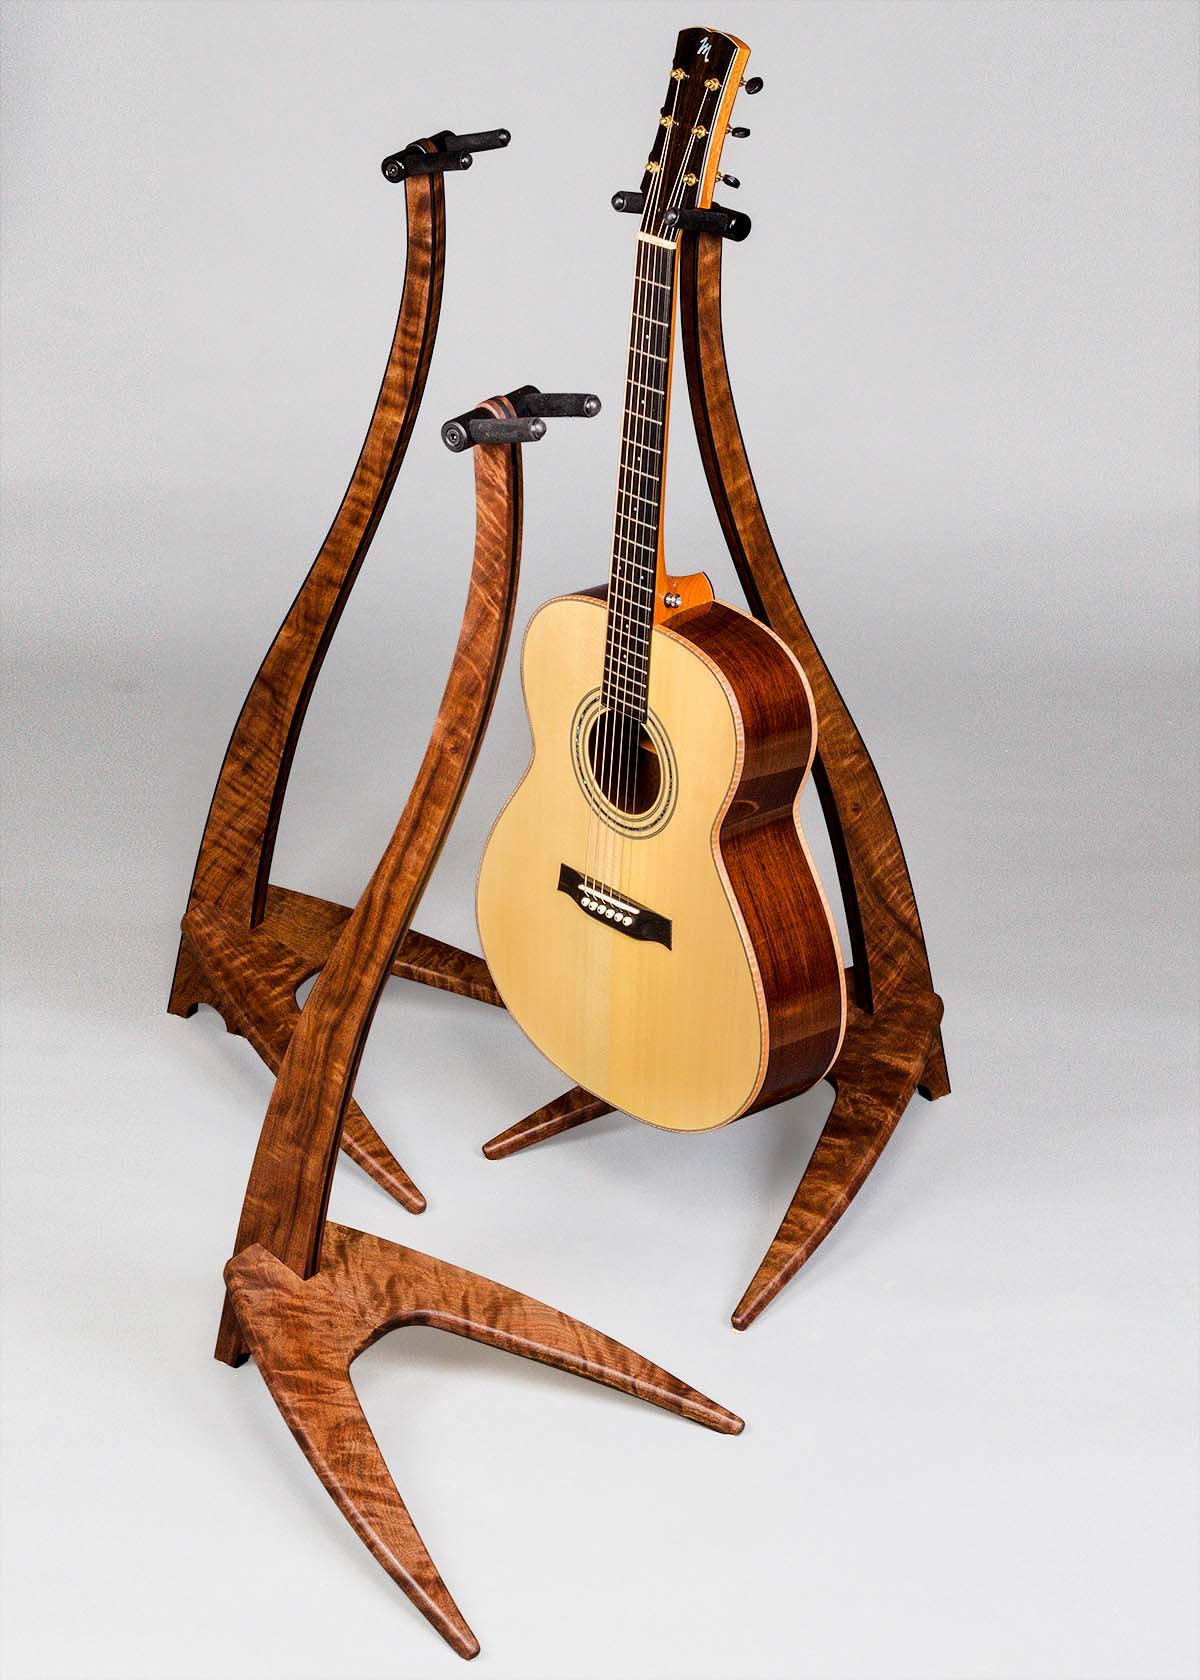 WM Guitar Stand in Claro Walnut with Ebony Inlay and Binding